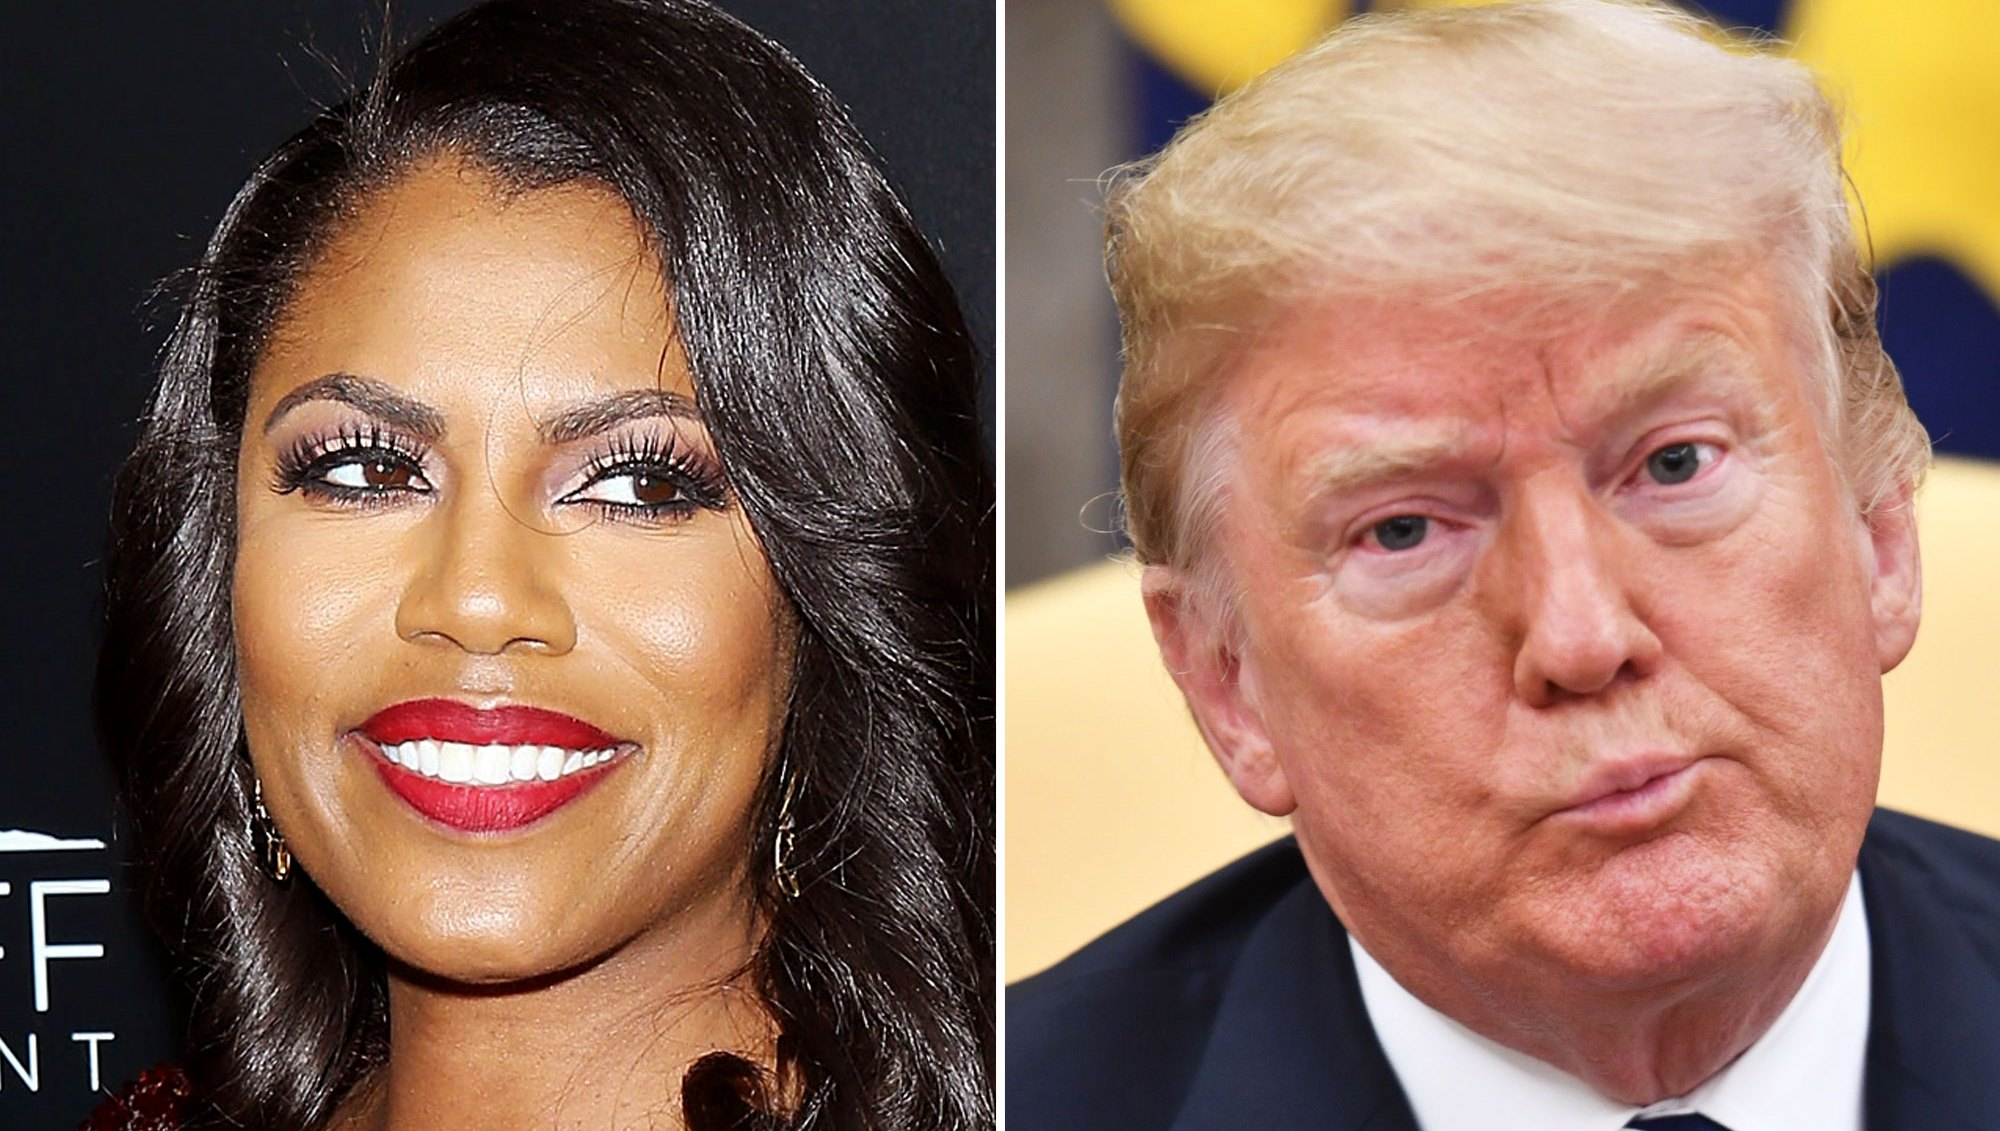 Omarosa Manigault Newman and President Donald Trump